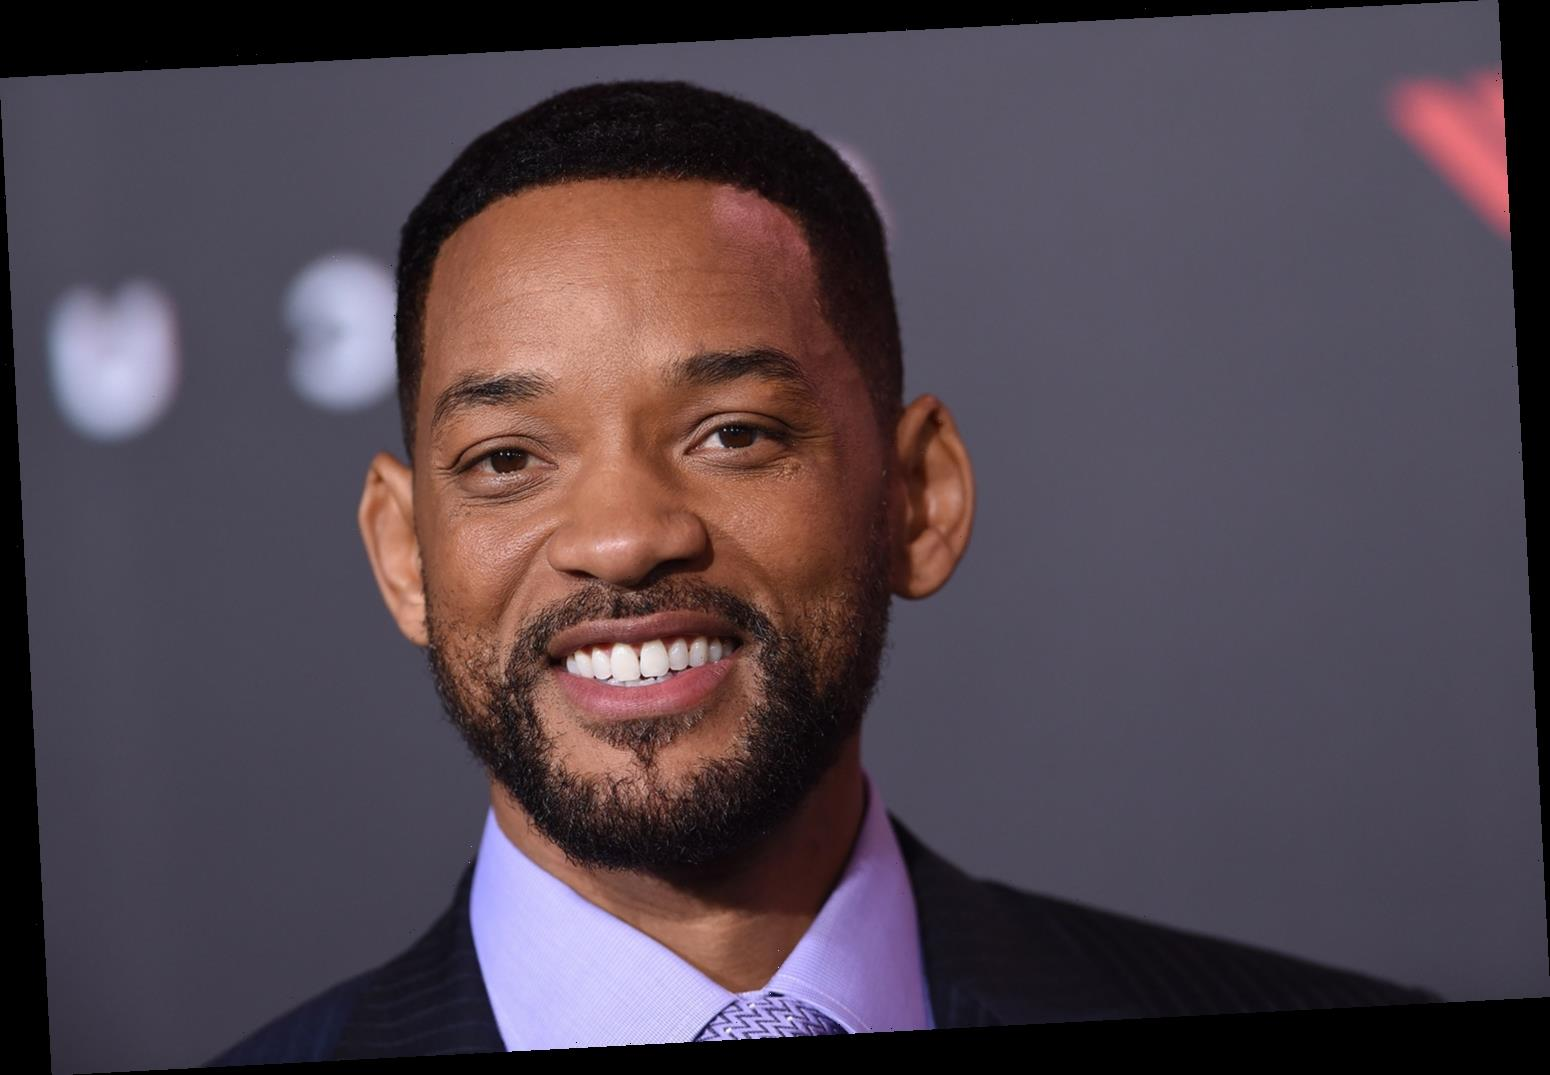 Will Smith Says He's Never Seen 'Intellect' in the Racist People Who Have Called Him the N-Word to His Face